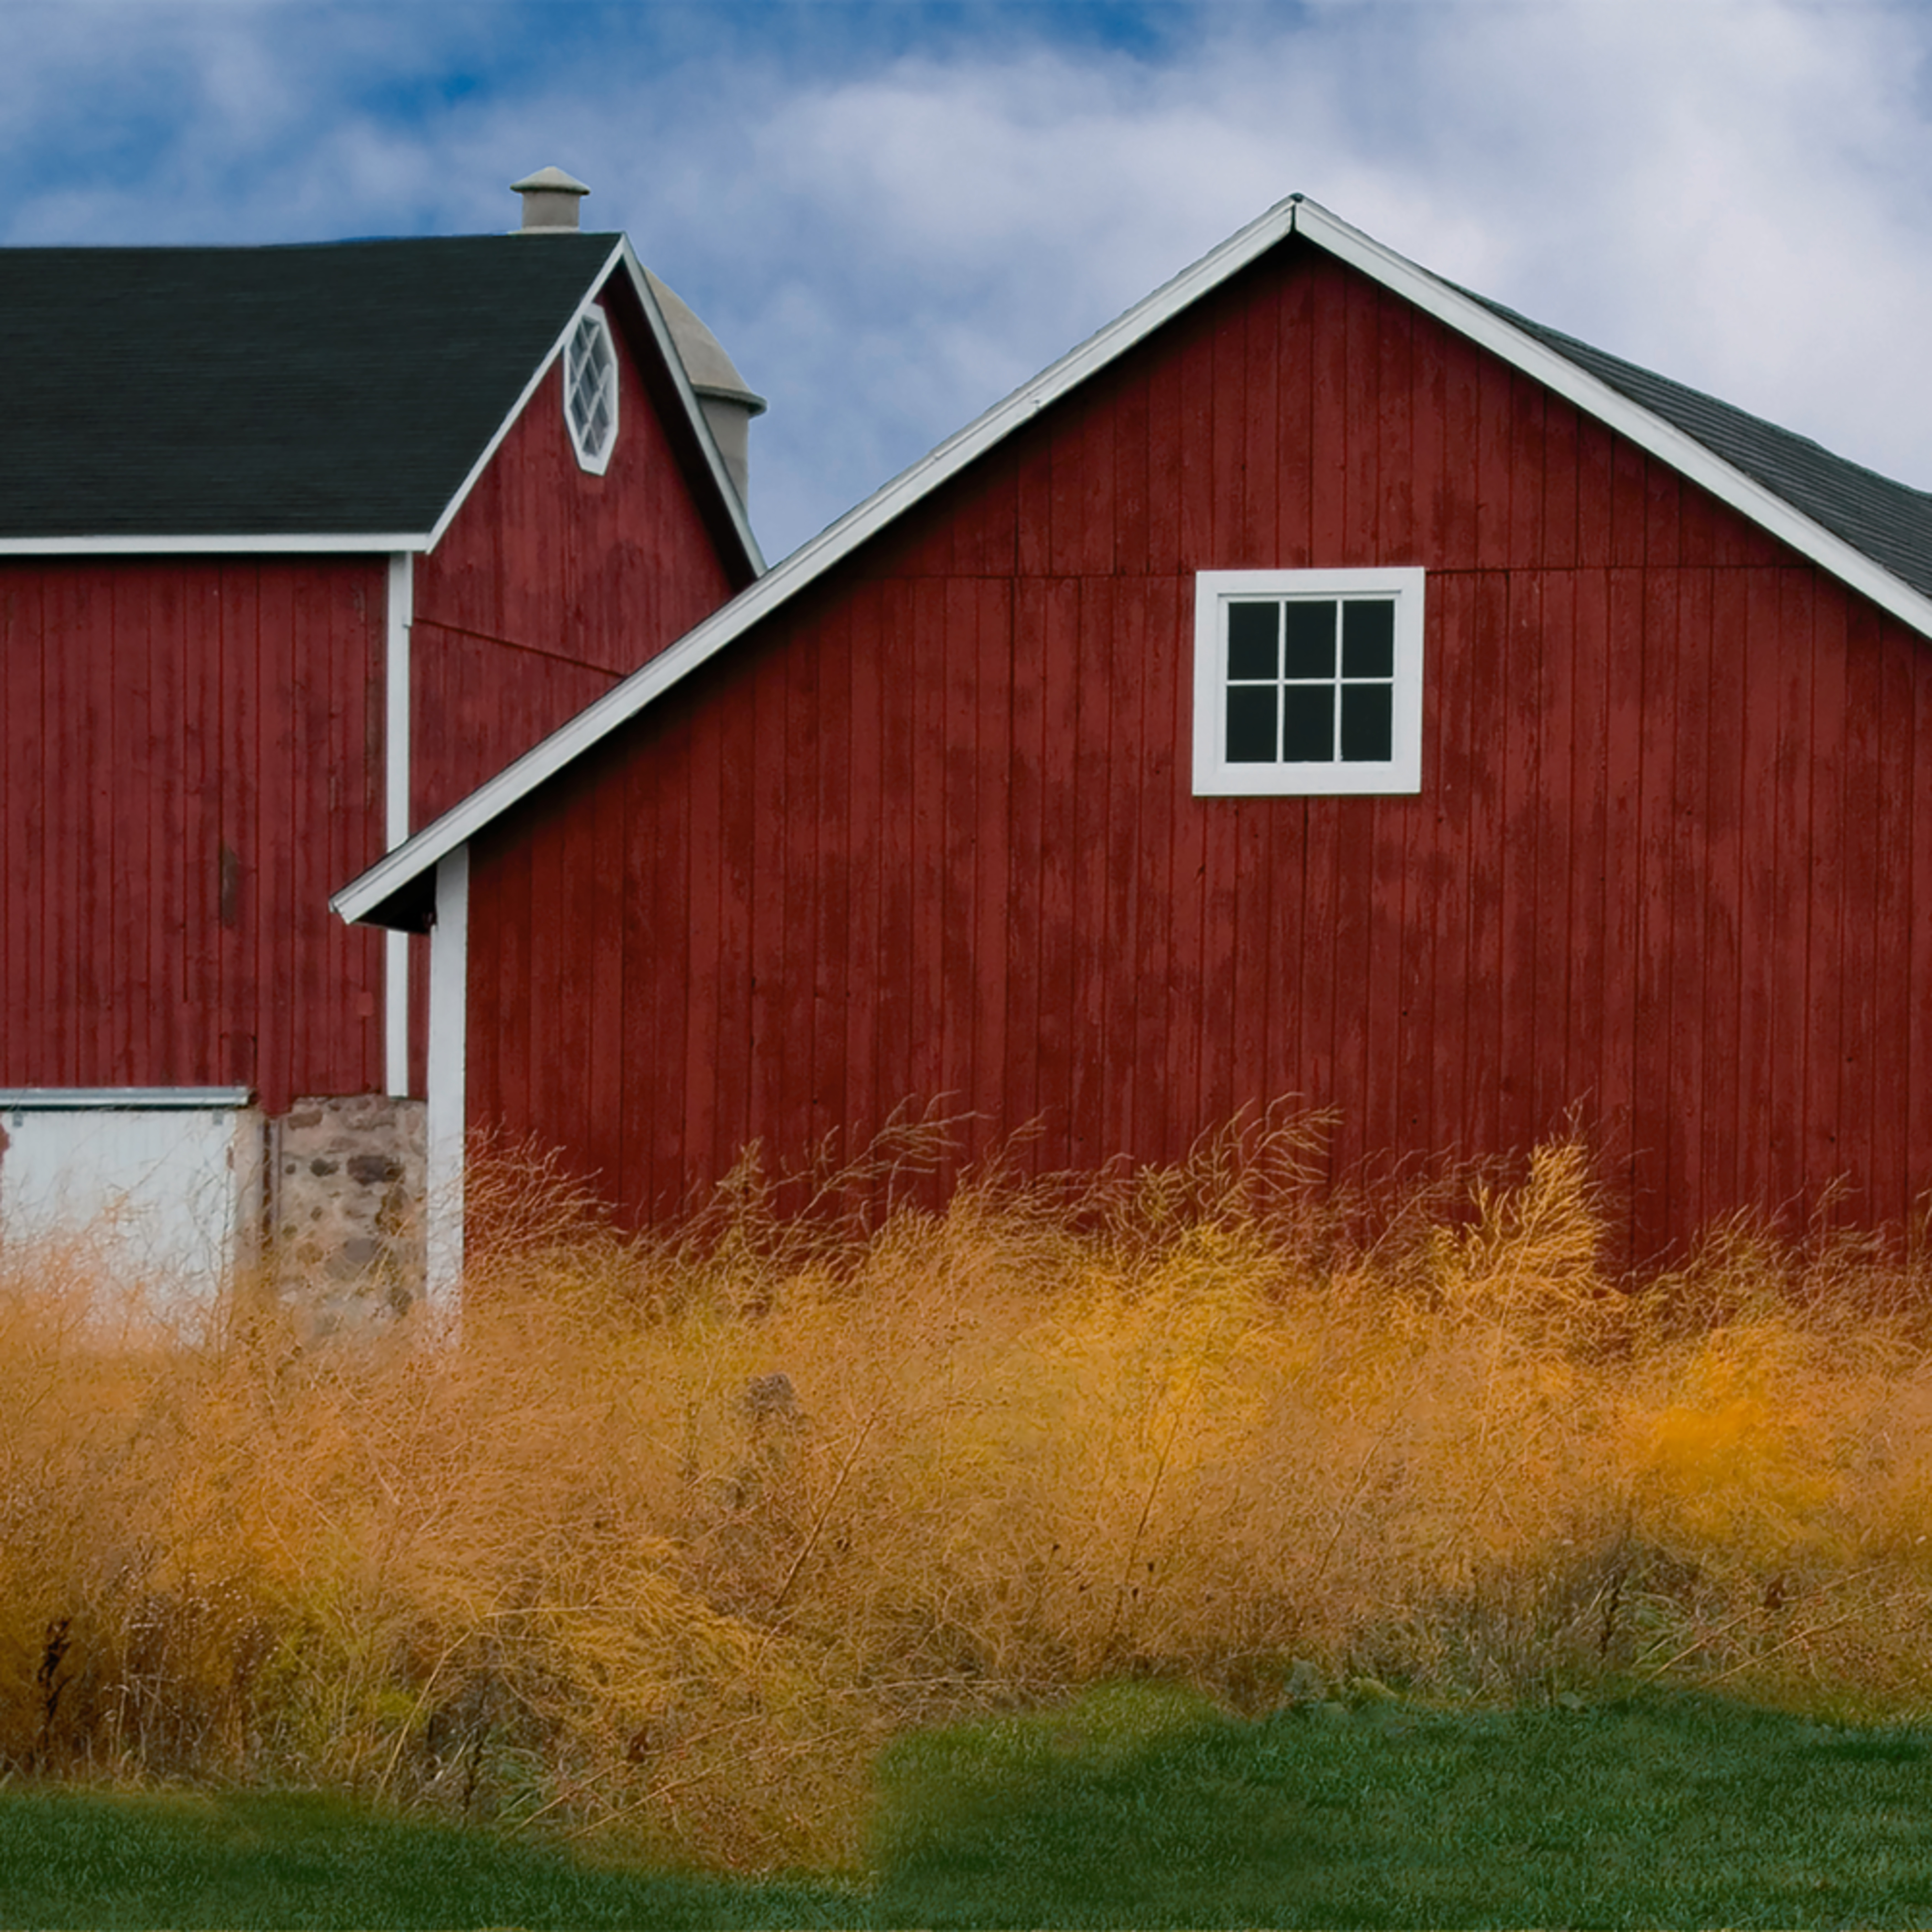 Yellow bushes on a red barn day final pgwj1v